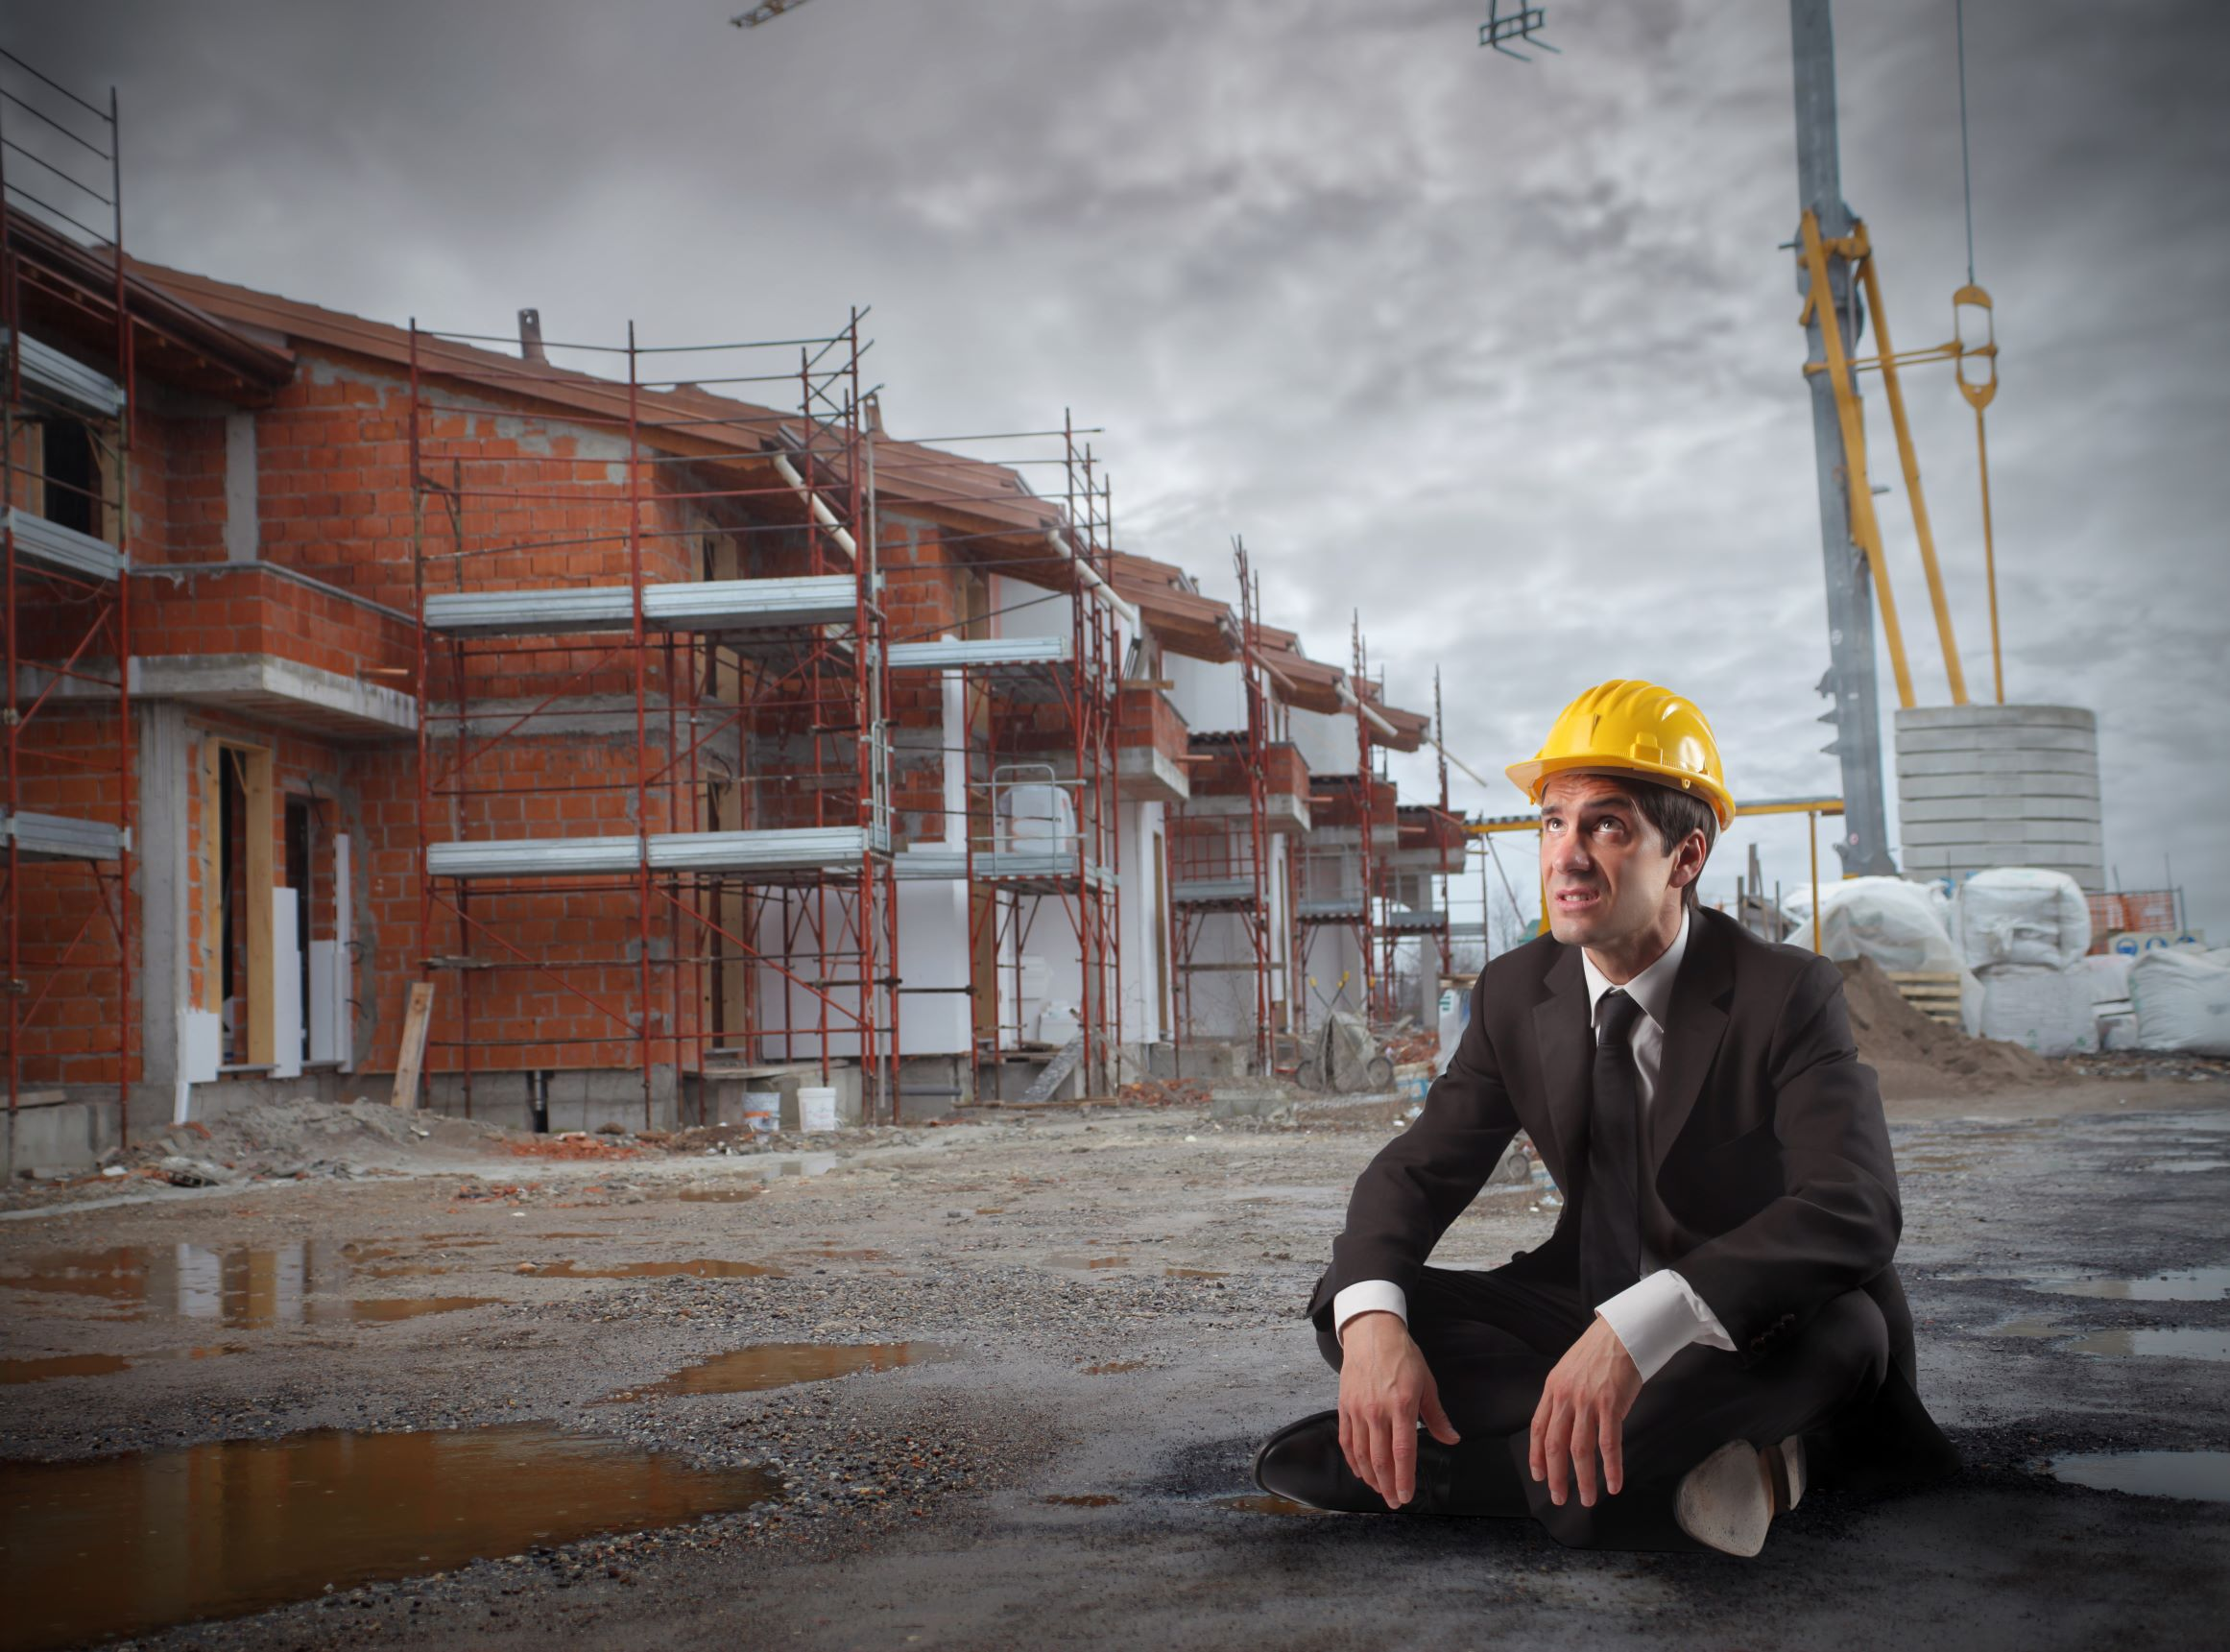 A man in suite sat on the floor in front of a building site.